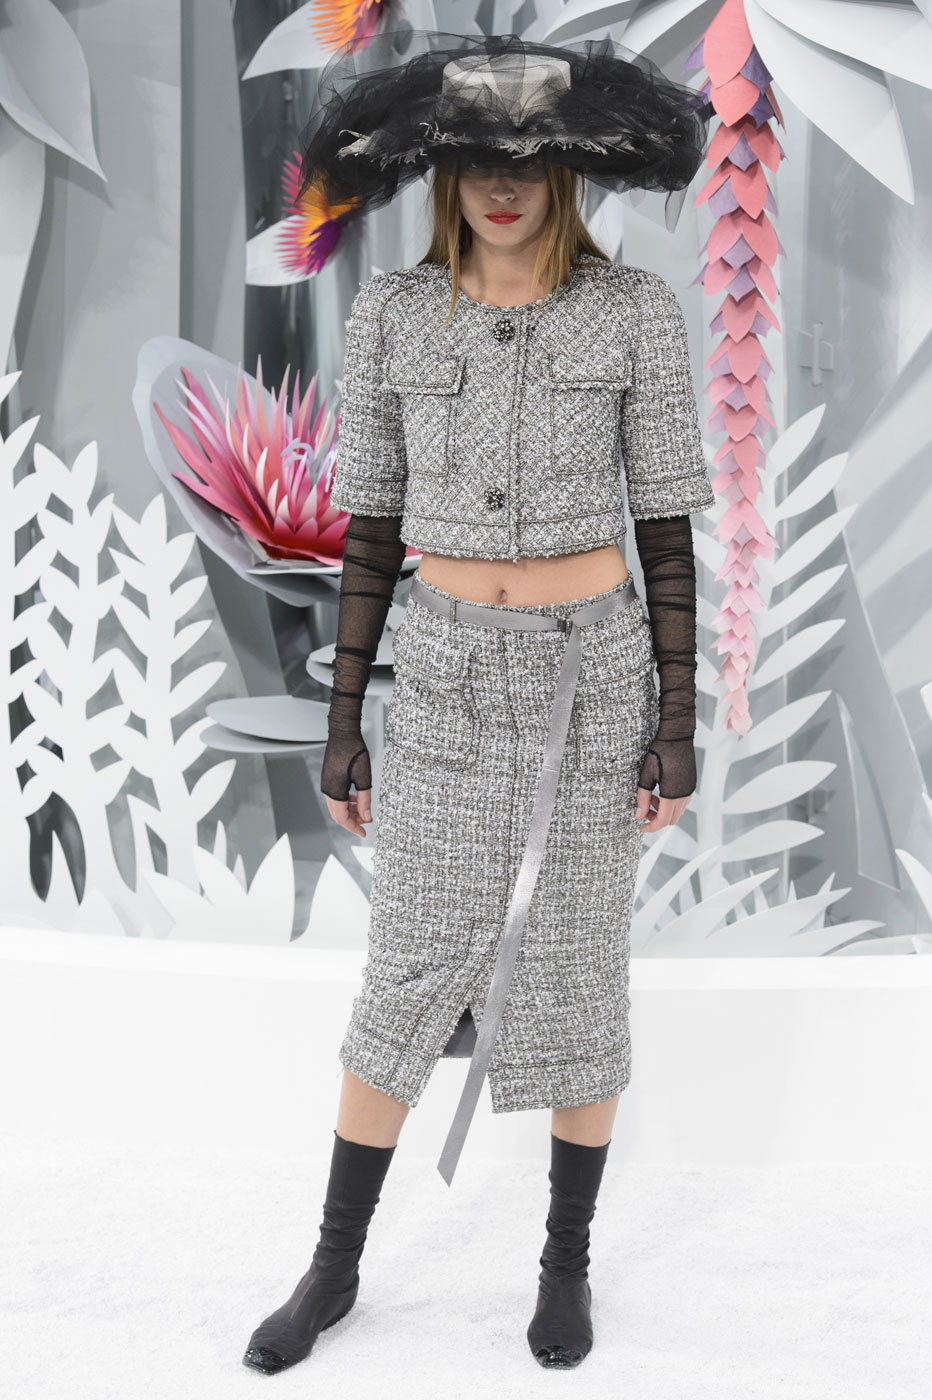 Chanel-fashion-runway-show-haute-couture-paris-spring-summer-2015-the-impression-042